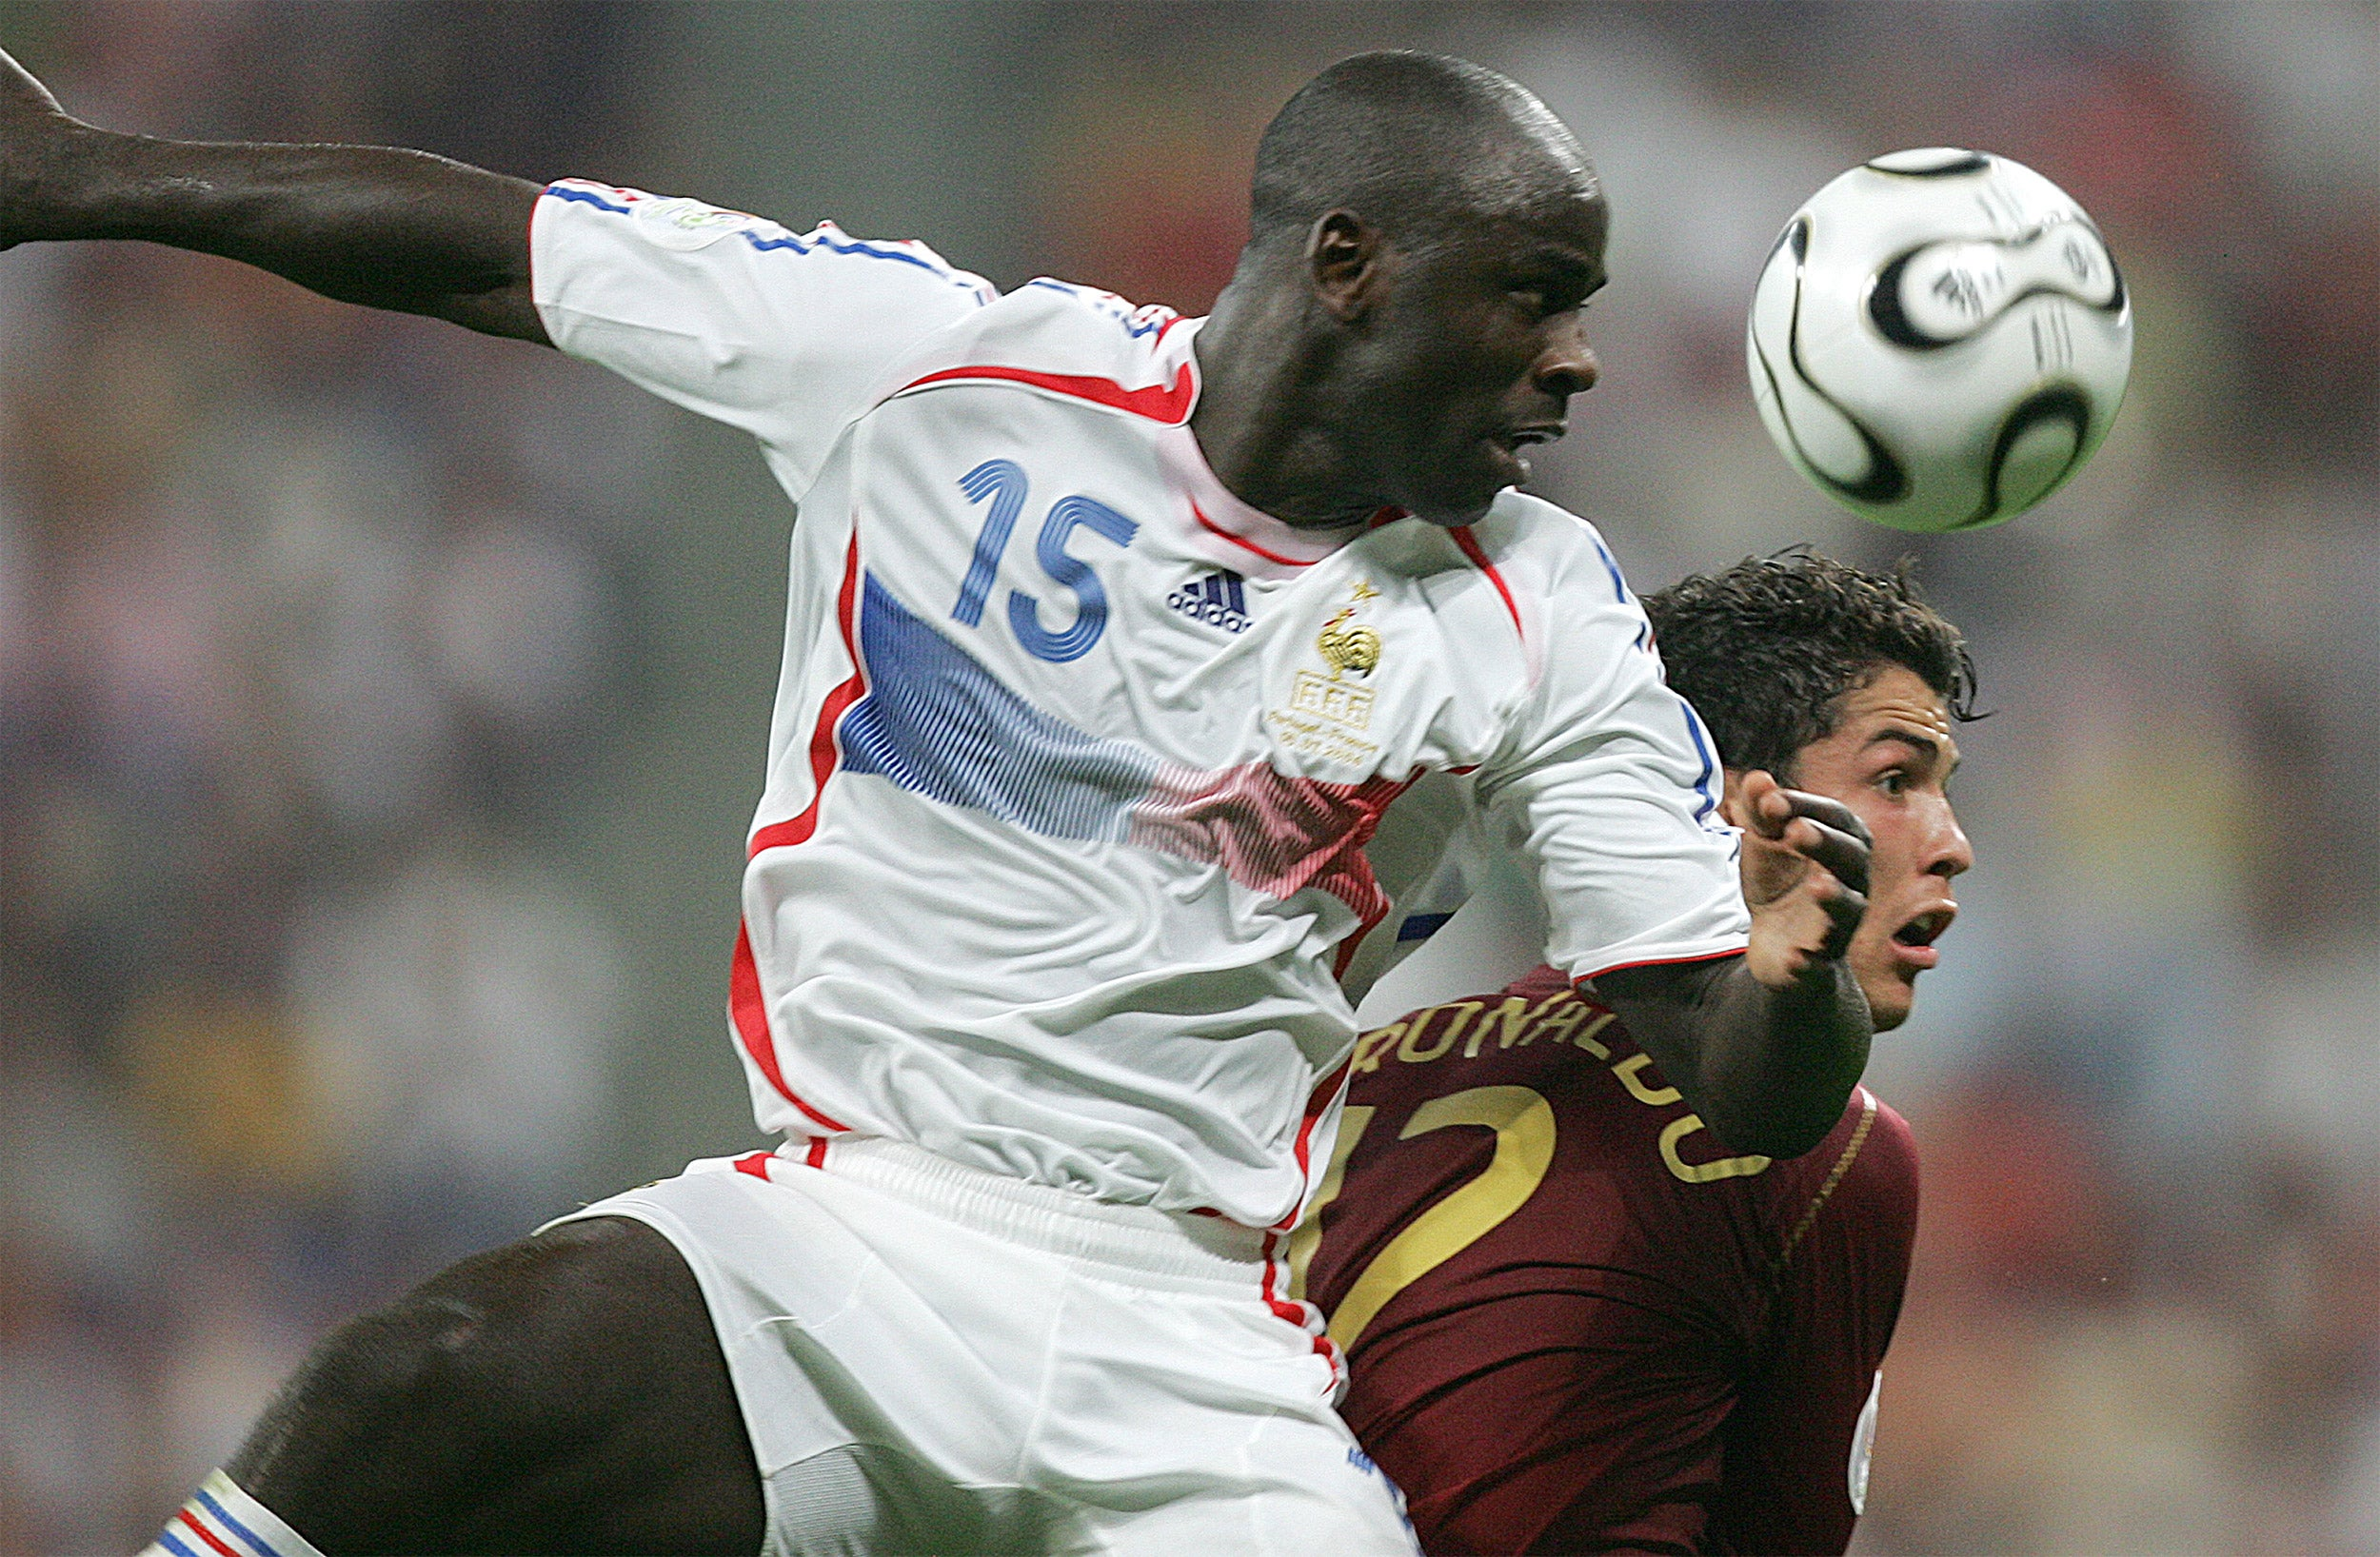 """Lilian Thuram (left), pictured battling Cristiano Ronaldo for a head ball during the 2006 World Cup, took part in """"Participation, Inclusion and Social Responsibility in Global Sports,"""" a three-day symposium on issues of racism and inclusion."""